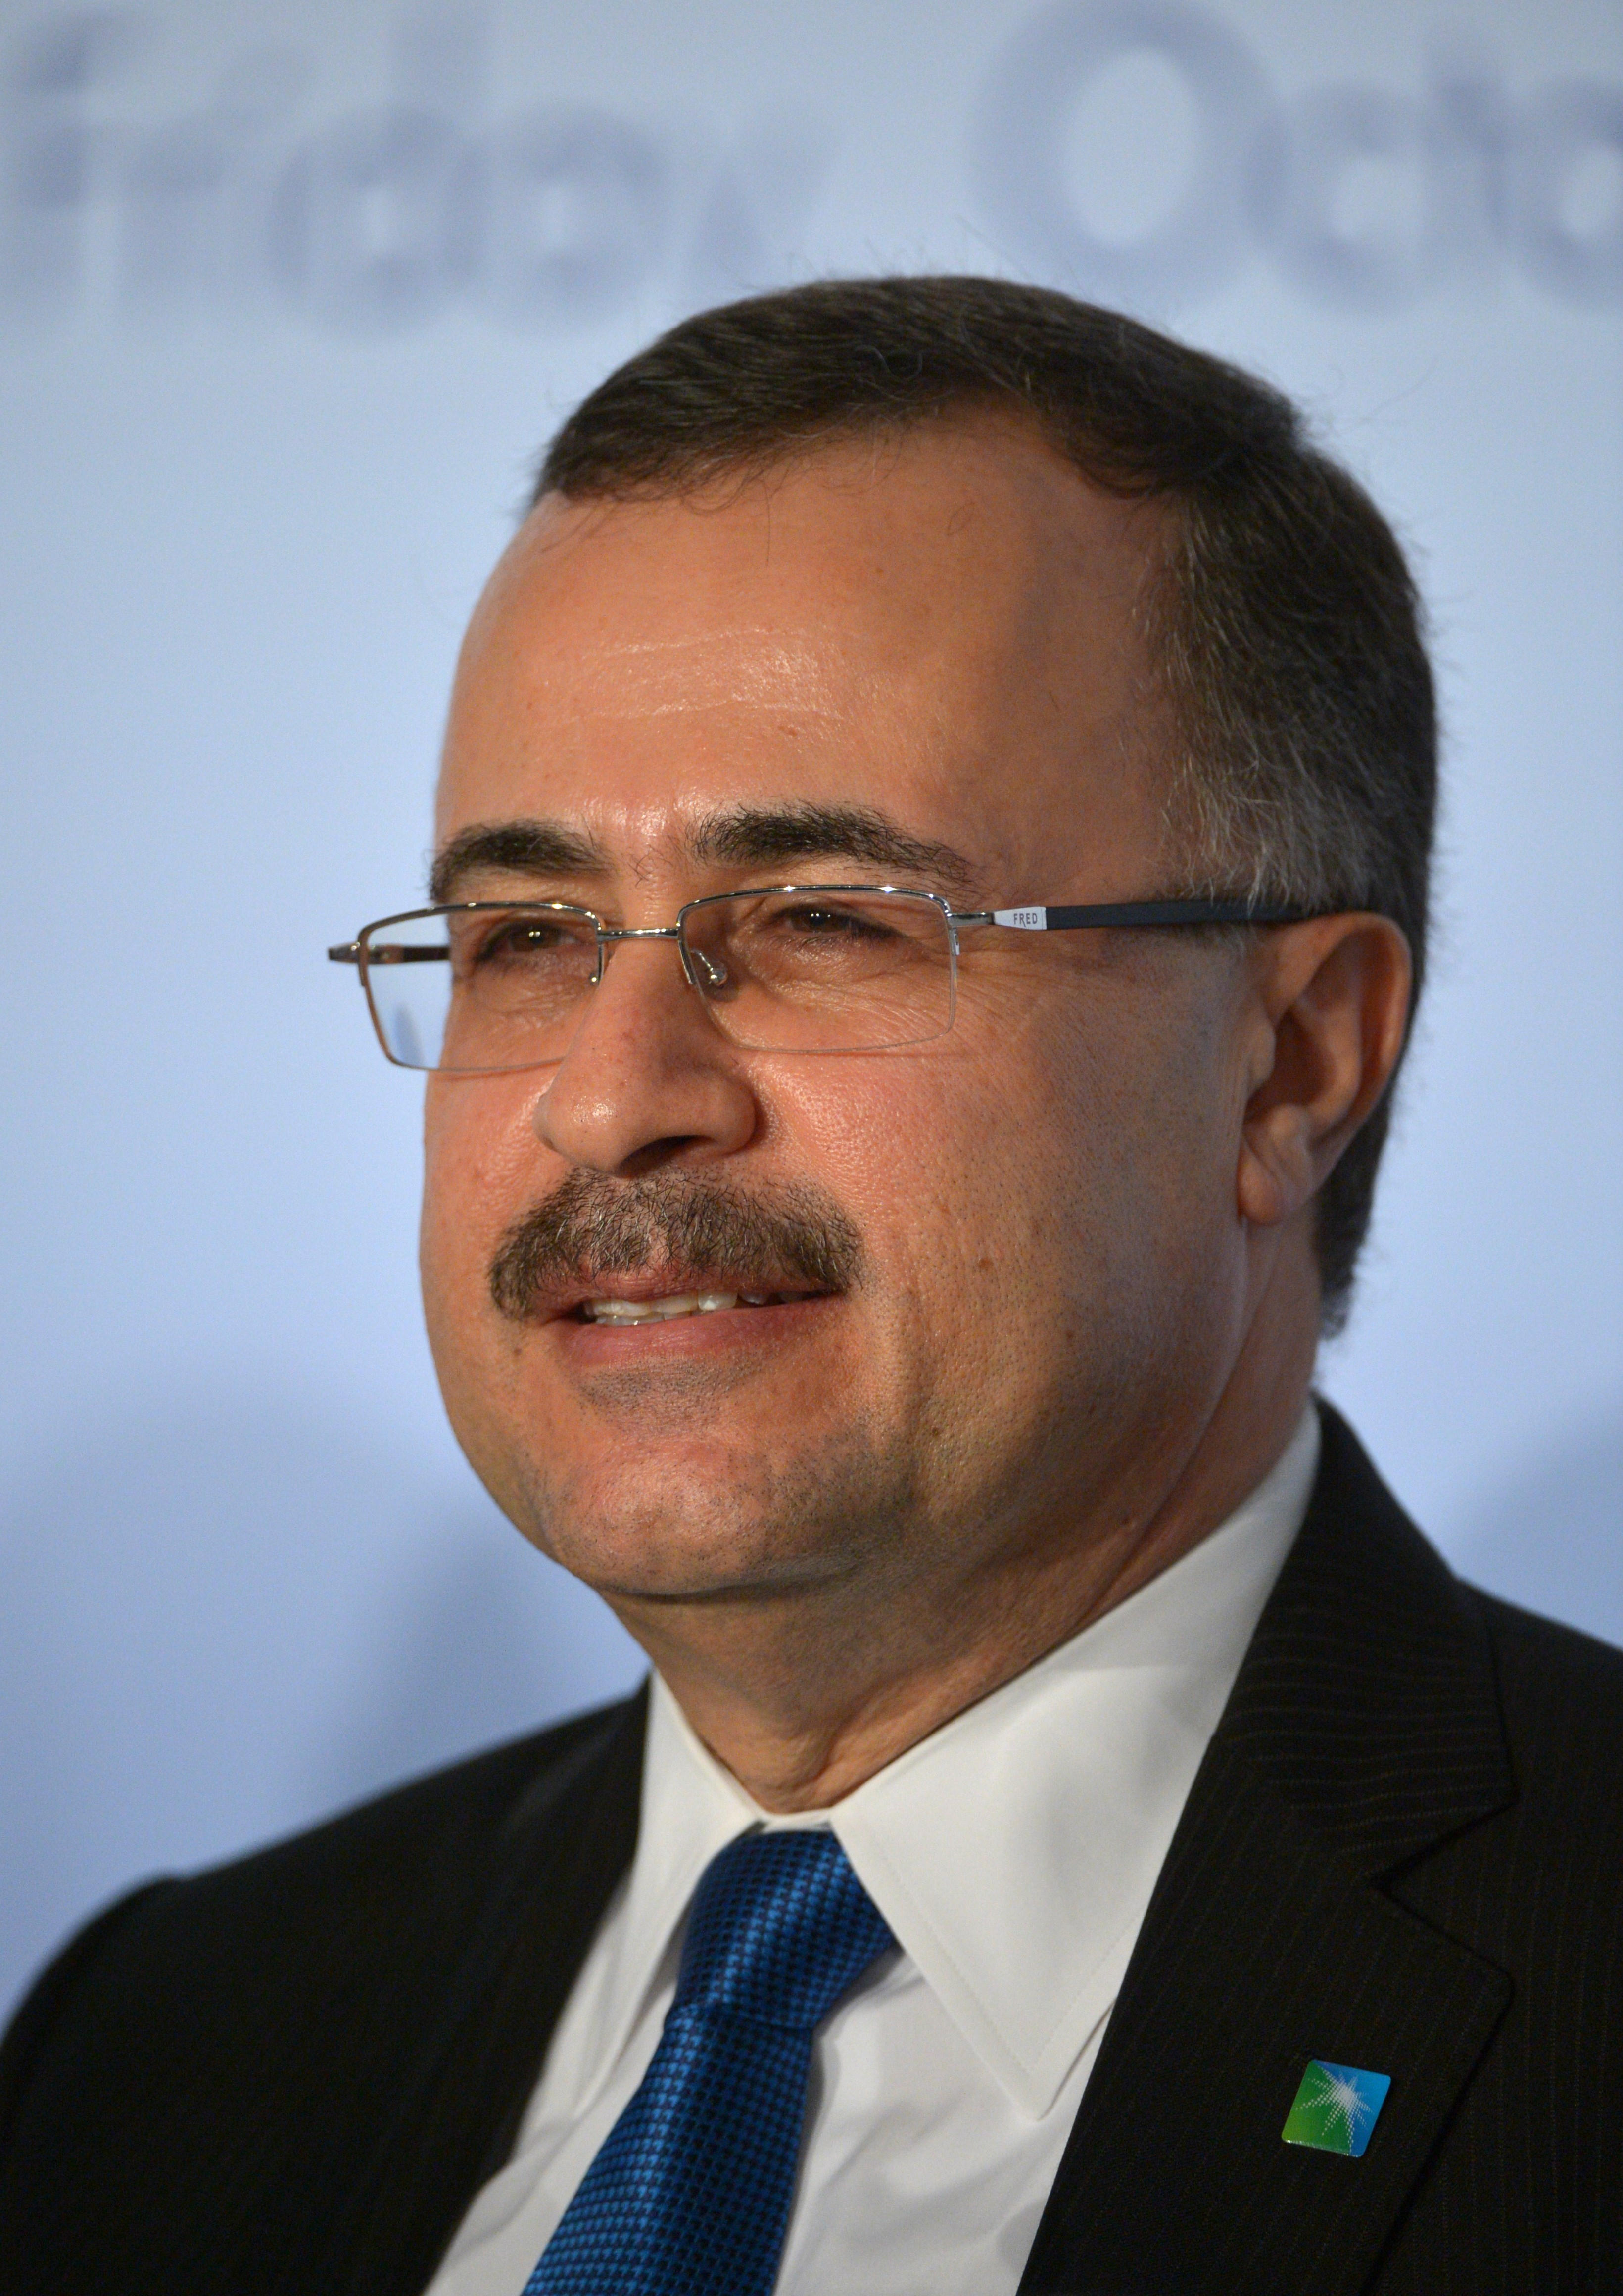 Saudi Aramco CEO Amin Nasser at a meeting of the Oil and Gas Climate Initiative (OGCI) in Paris on Oct. 16, 2015.